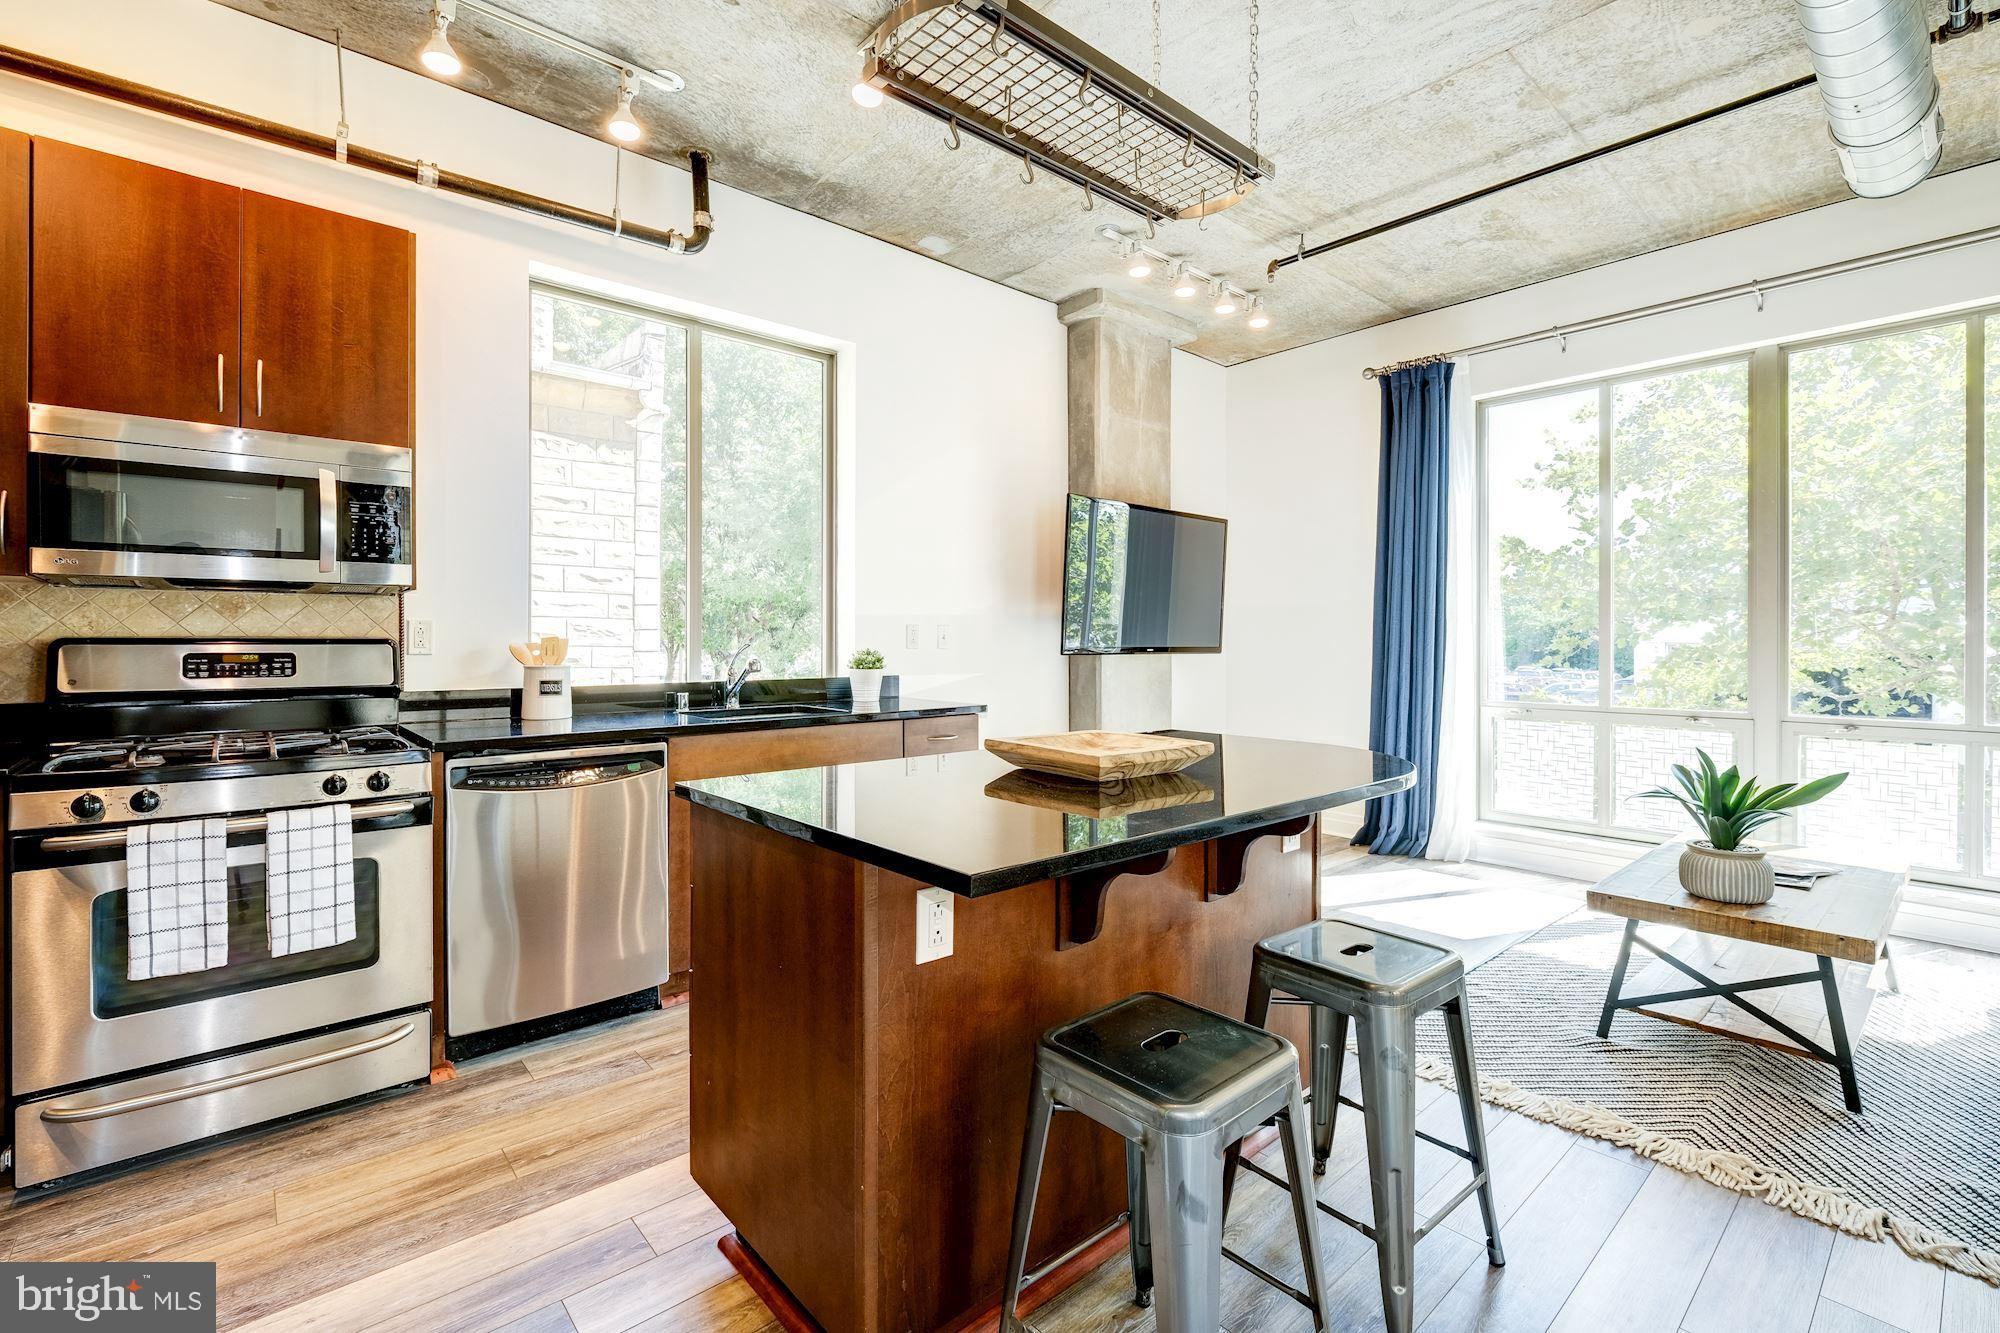 Open House Sunday September 1st 2-4 PM. Beautifully updated TRUE 2 bed/2 bath at the Sonata in Mount Vernon Triangle. Recent updates include new HVAC, new floors, new W/D, beautifully renovated master bath with shower and dual vanities. Soaring ceilings let gracious amounts of light flood in from three exposures in the open living/kitchen/dining space, and looks out to tree-top views. The open living space offers great entertainment space, but also is a cozy little oasis in the middle of the hustle and bustle of the city! Super high ceilings with the industrial feel make this the perfect home! Walk to tons of restaurants, bars, etc, and have easy access to 395 and metros, and tons of new development in the area means more is coming!Condo fee includes great amenities (rooftop, gym, concierge), and parking and storage included. Pet friendly building in the heart of Mount Vernon Triangle, with easy access to just about anywhere!